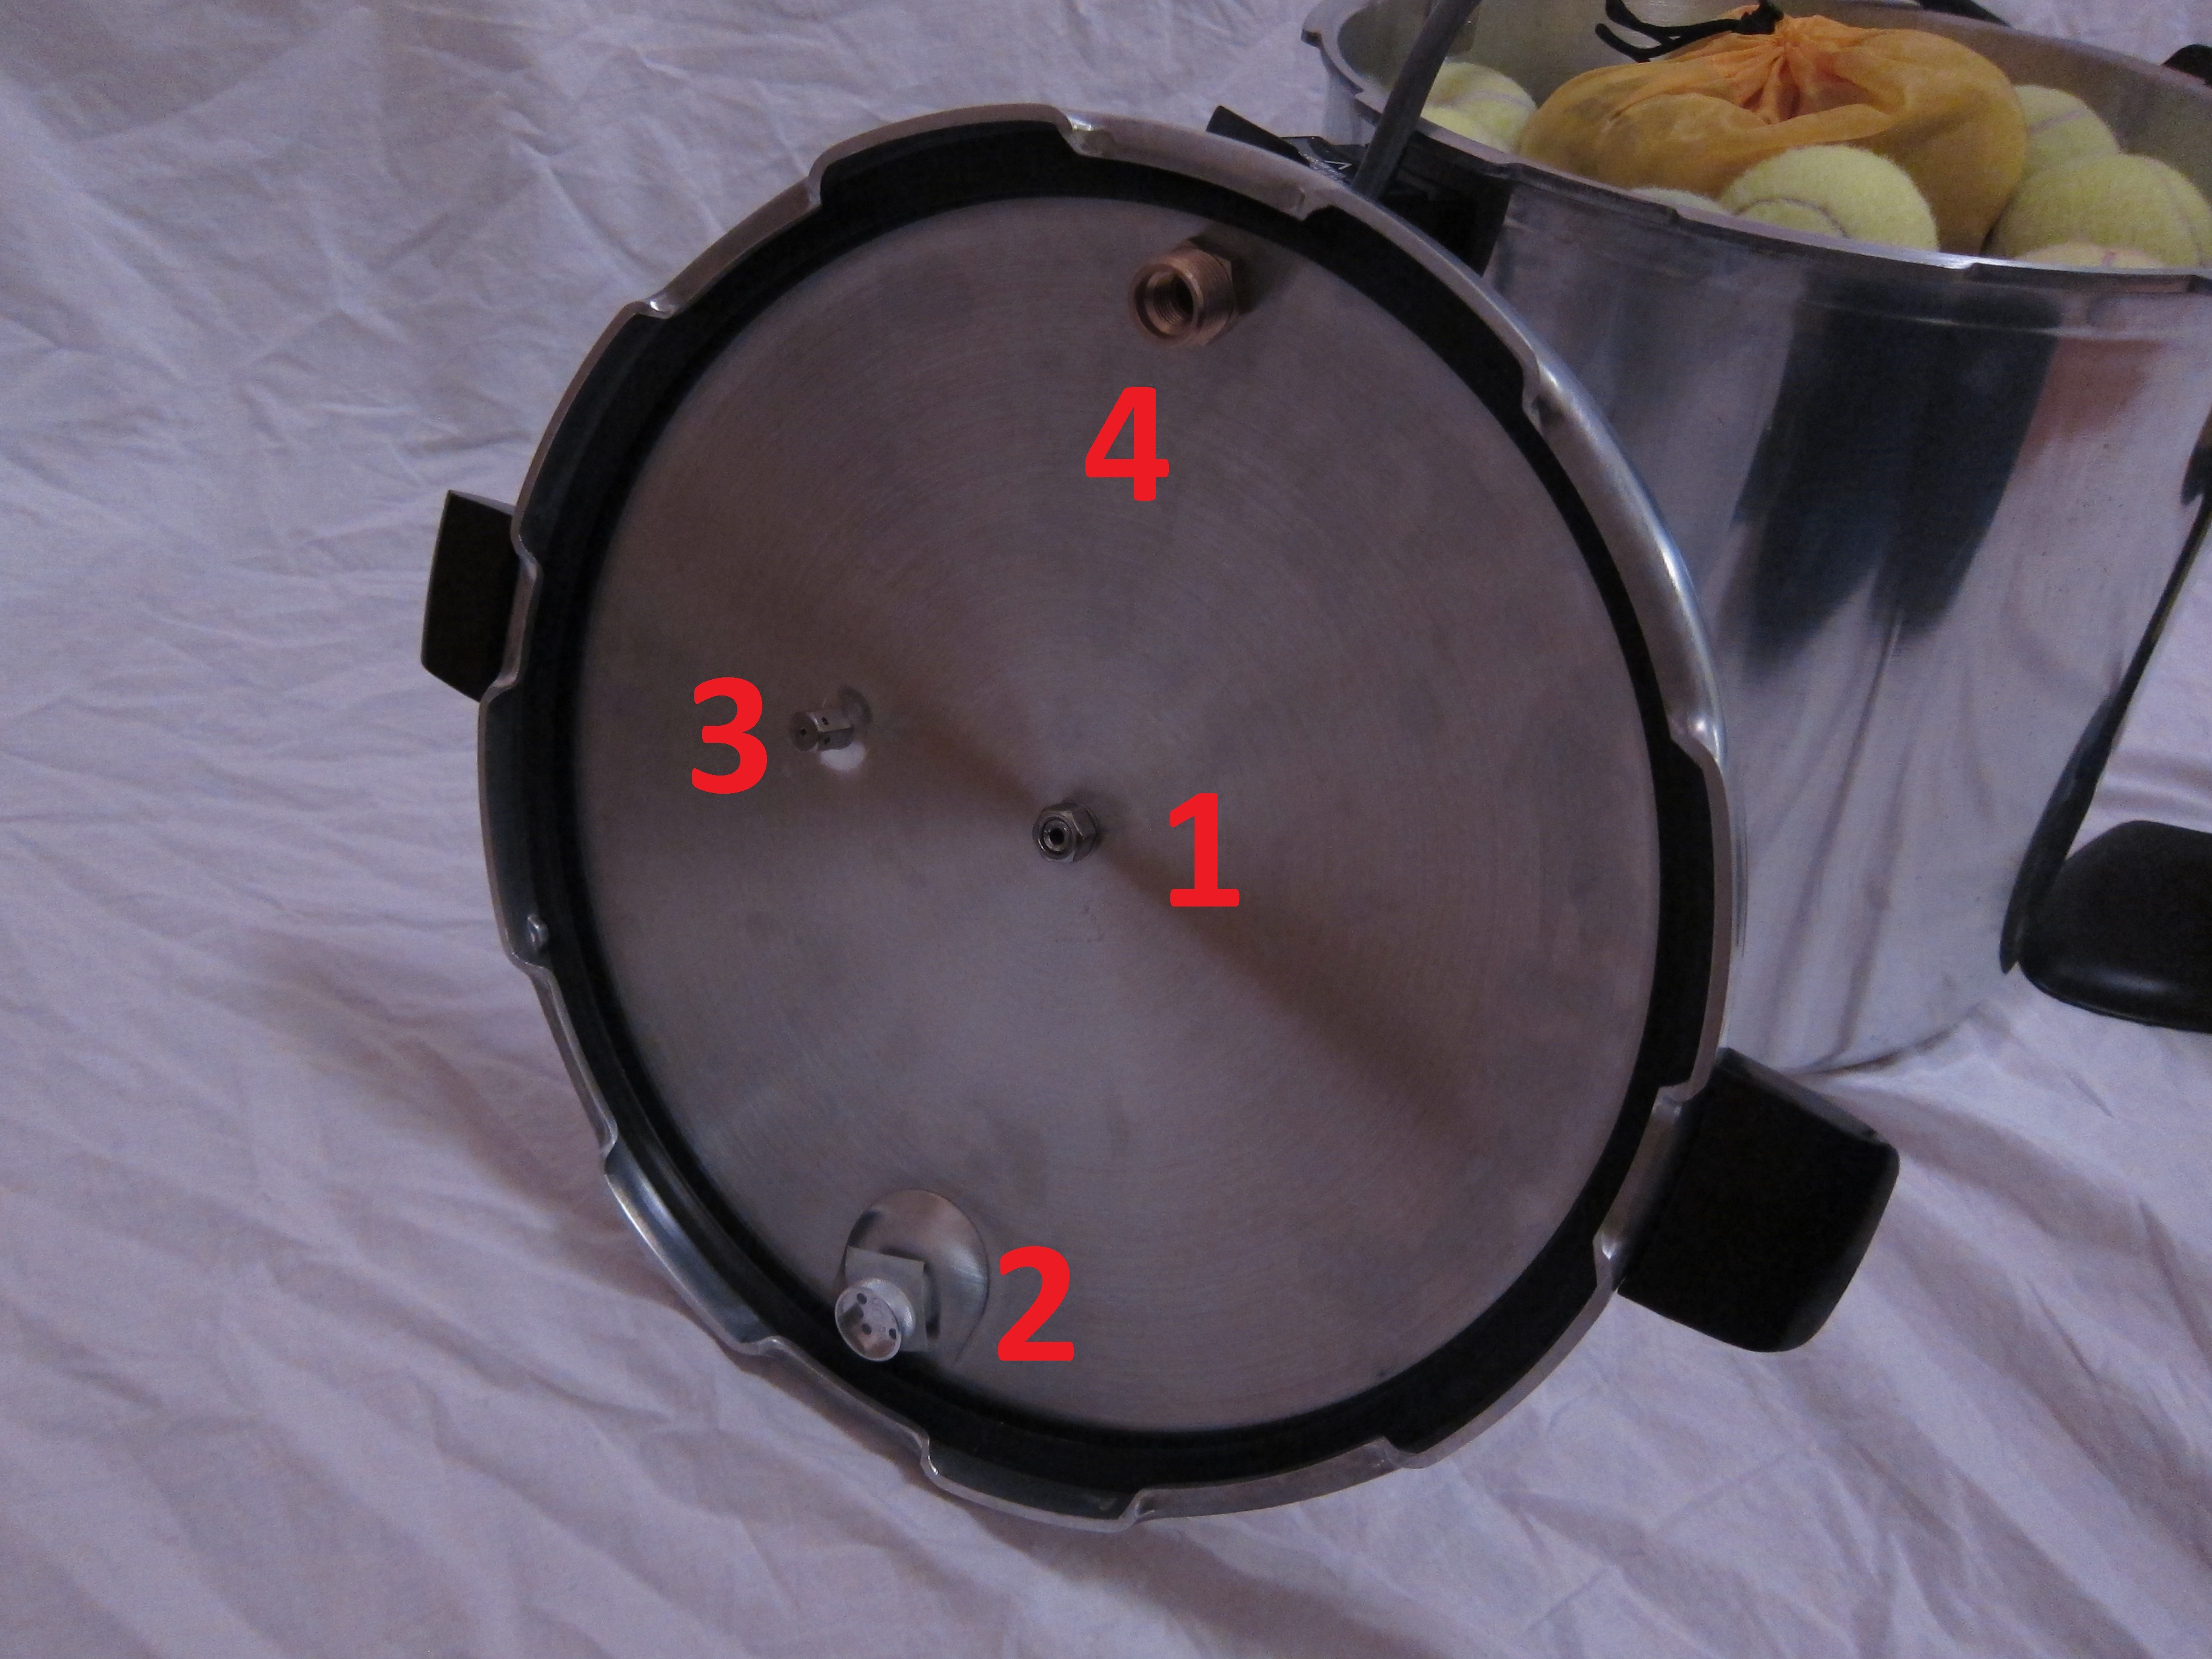 see text for a description of the numbers